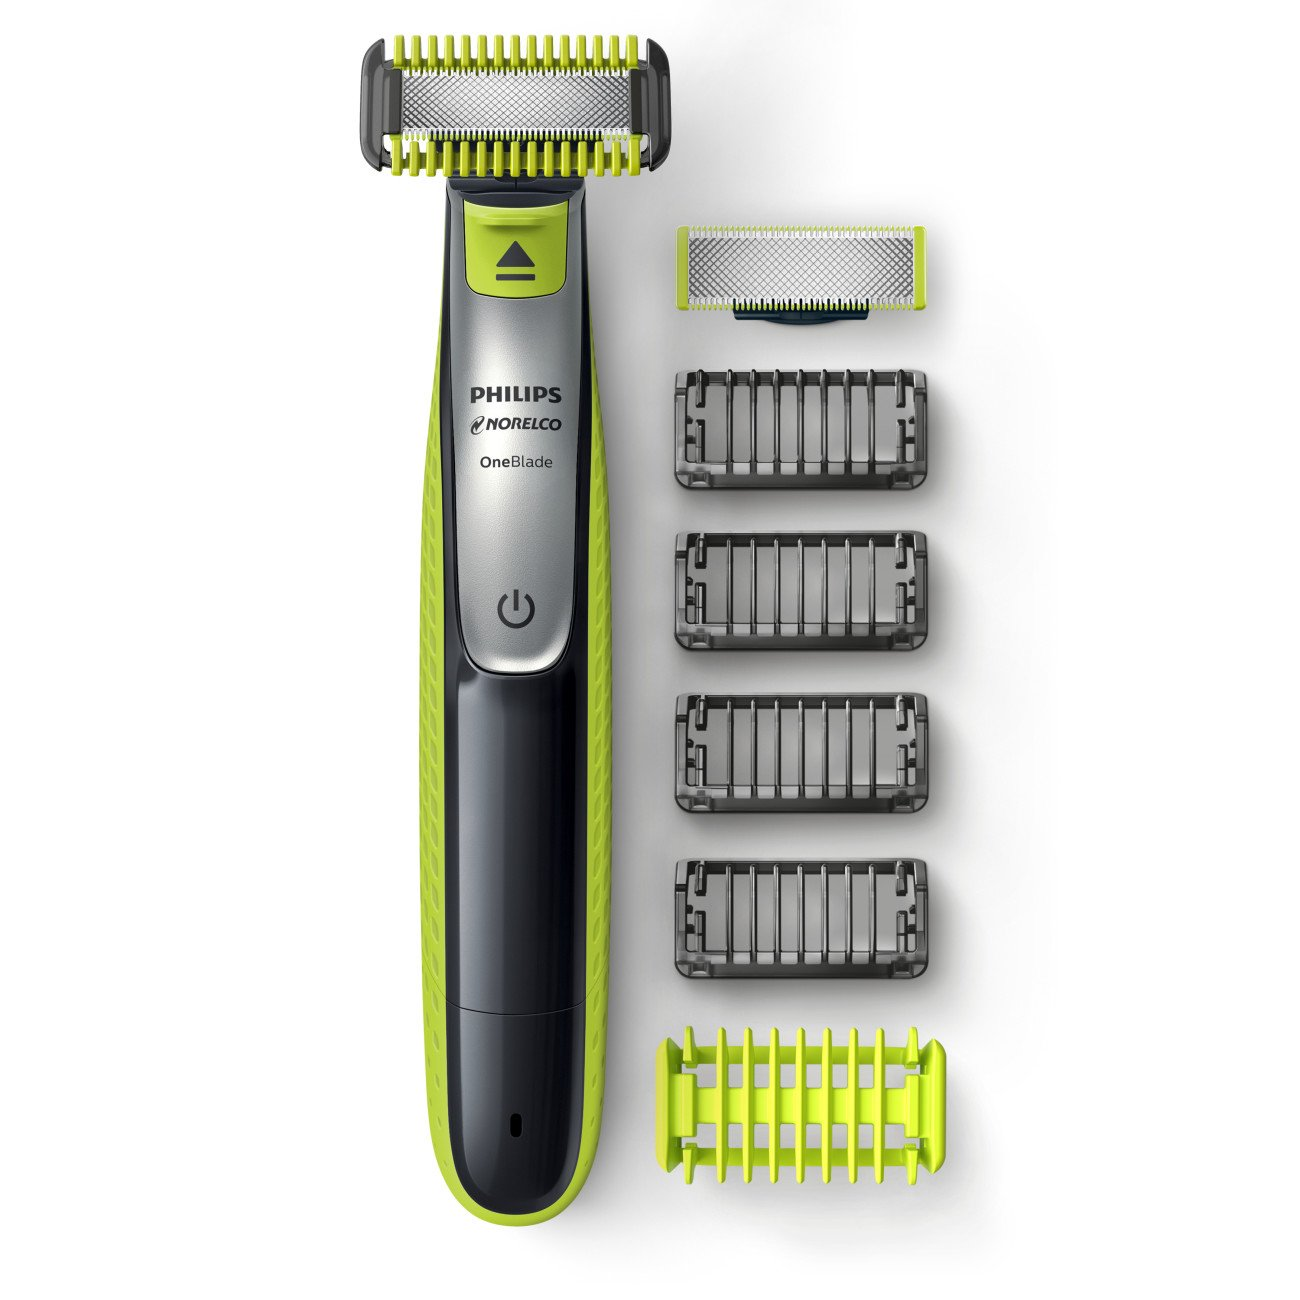 Philips Norelco OneBlade Hybrid Body Trimmer